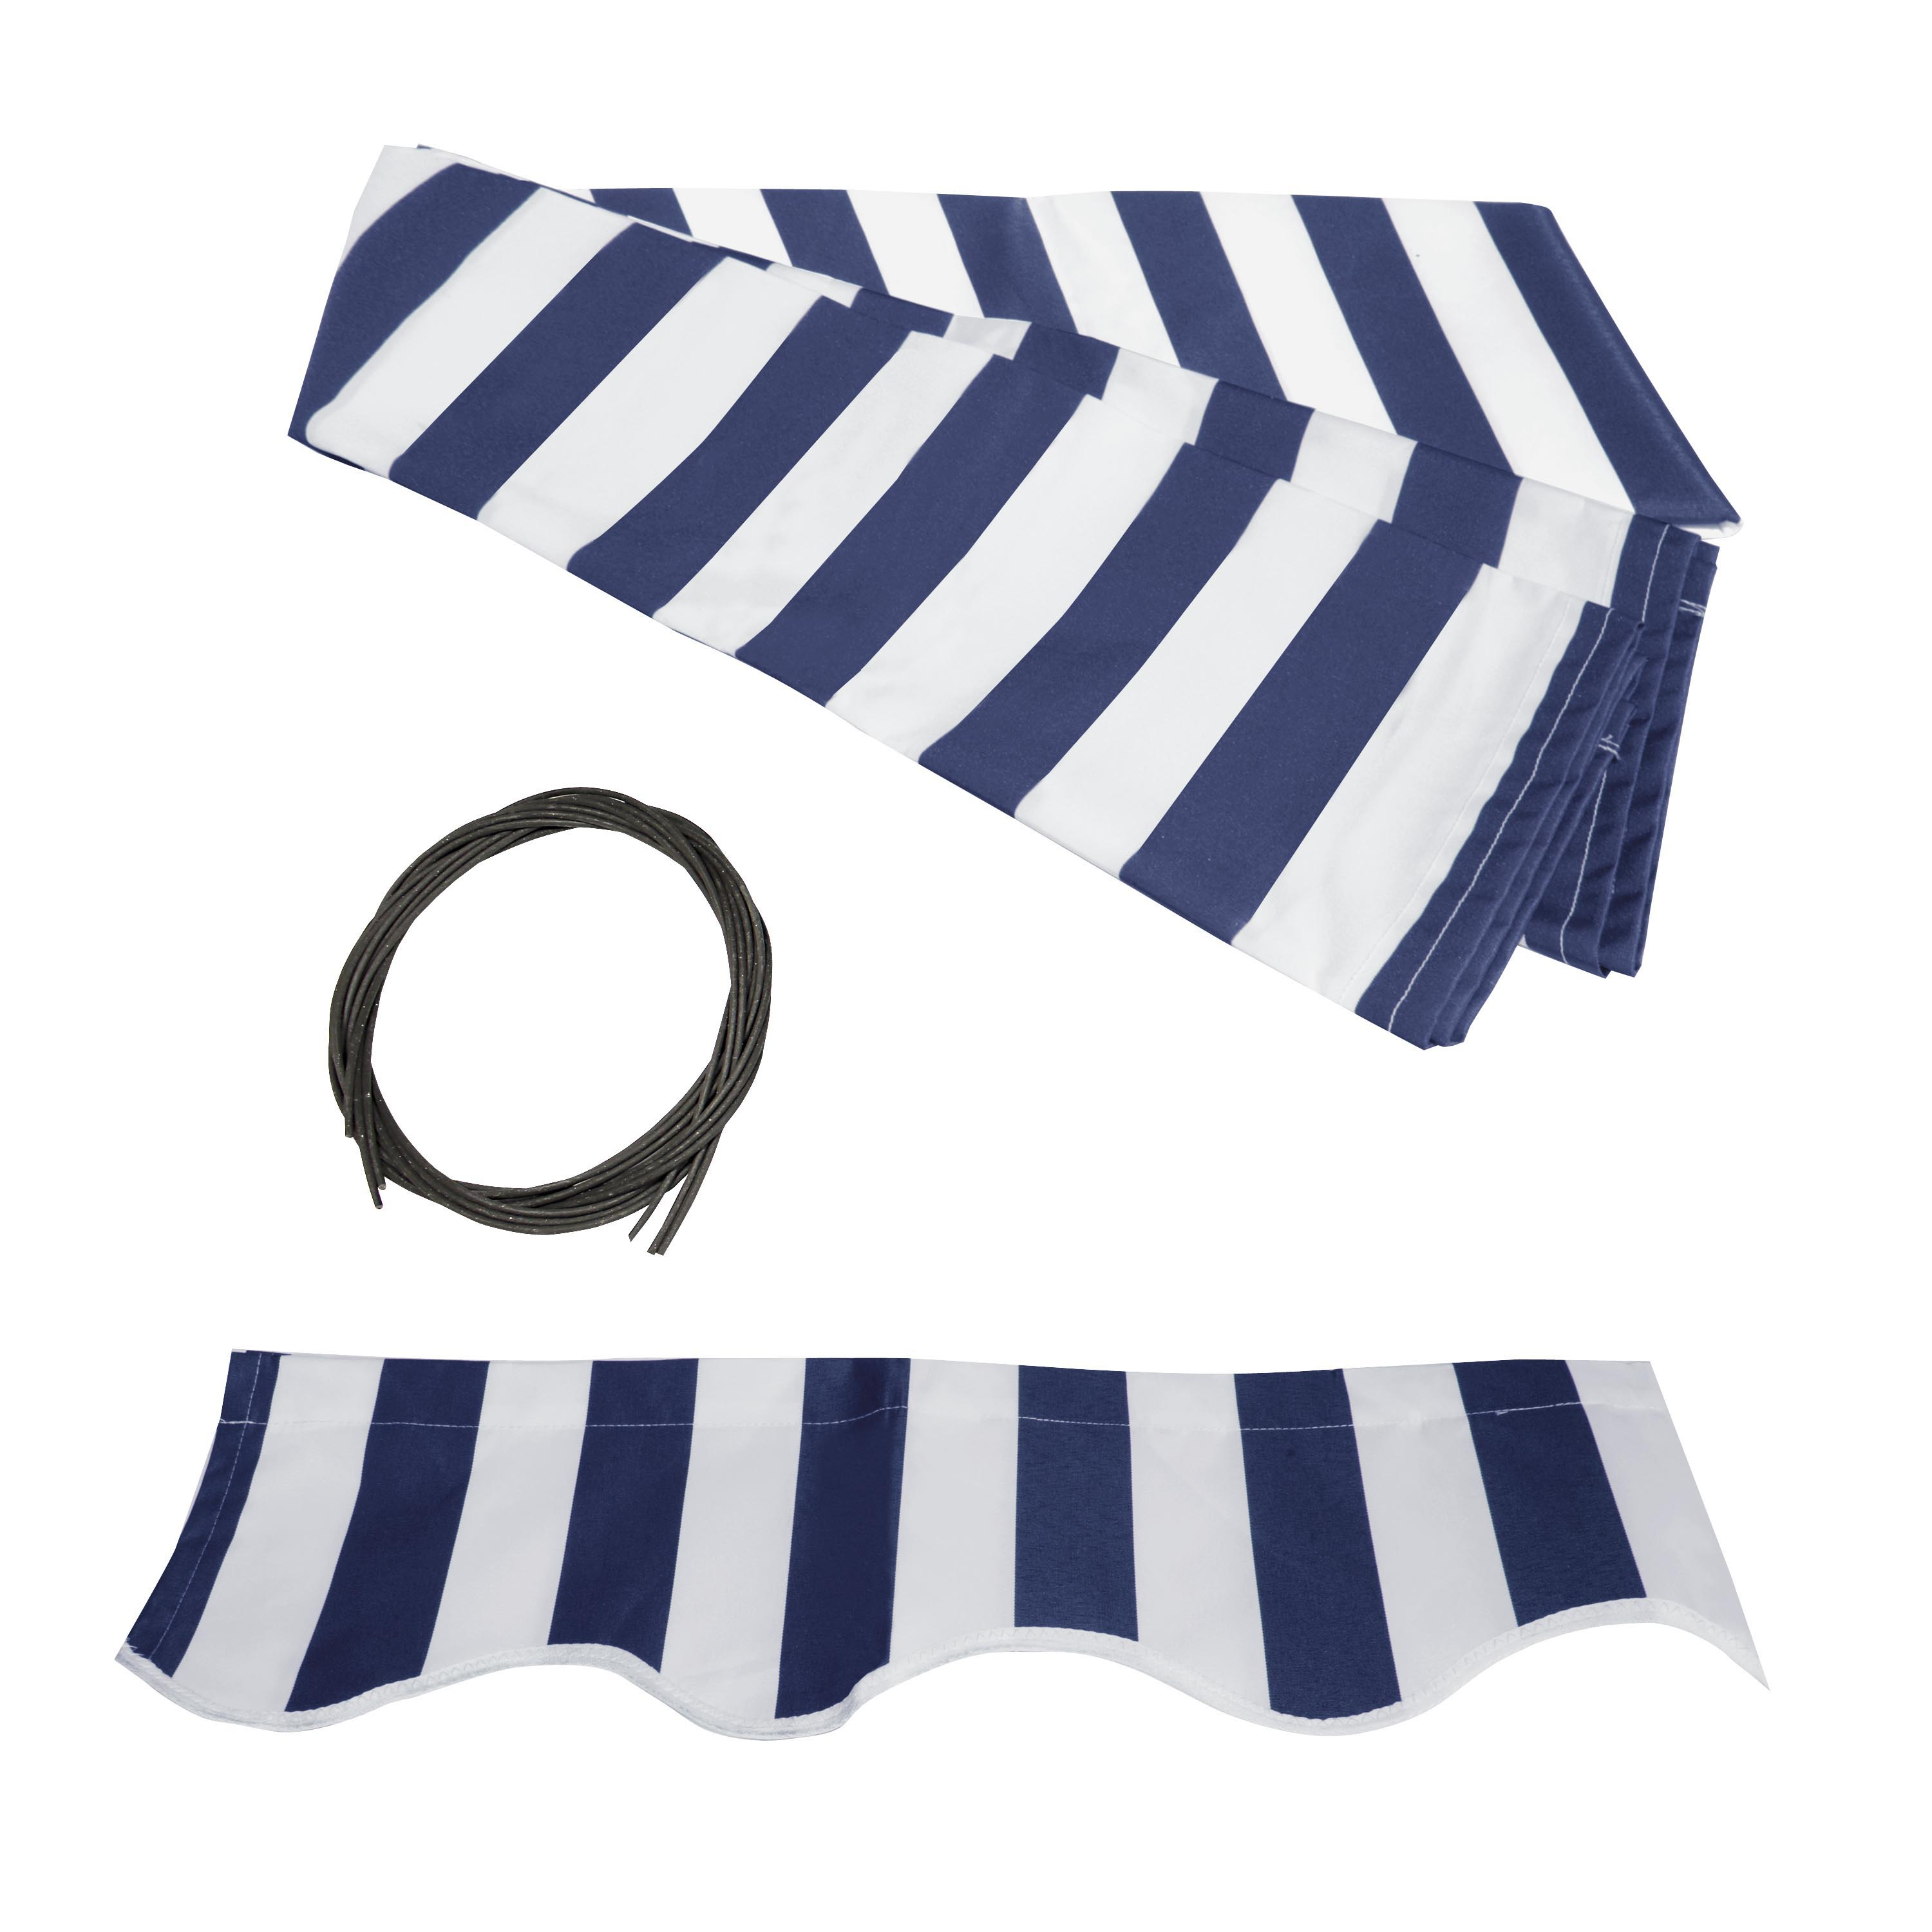 ALEKO Retractable Awning Fabric Replacement - 13x10 Feet - Blue and White Striped